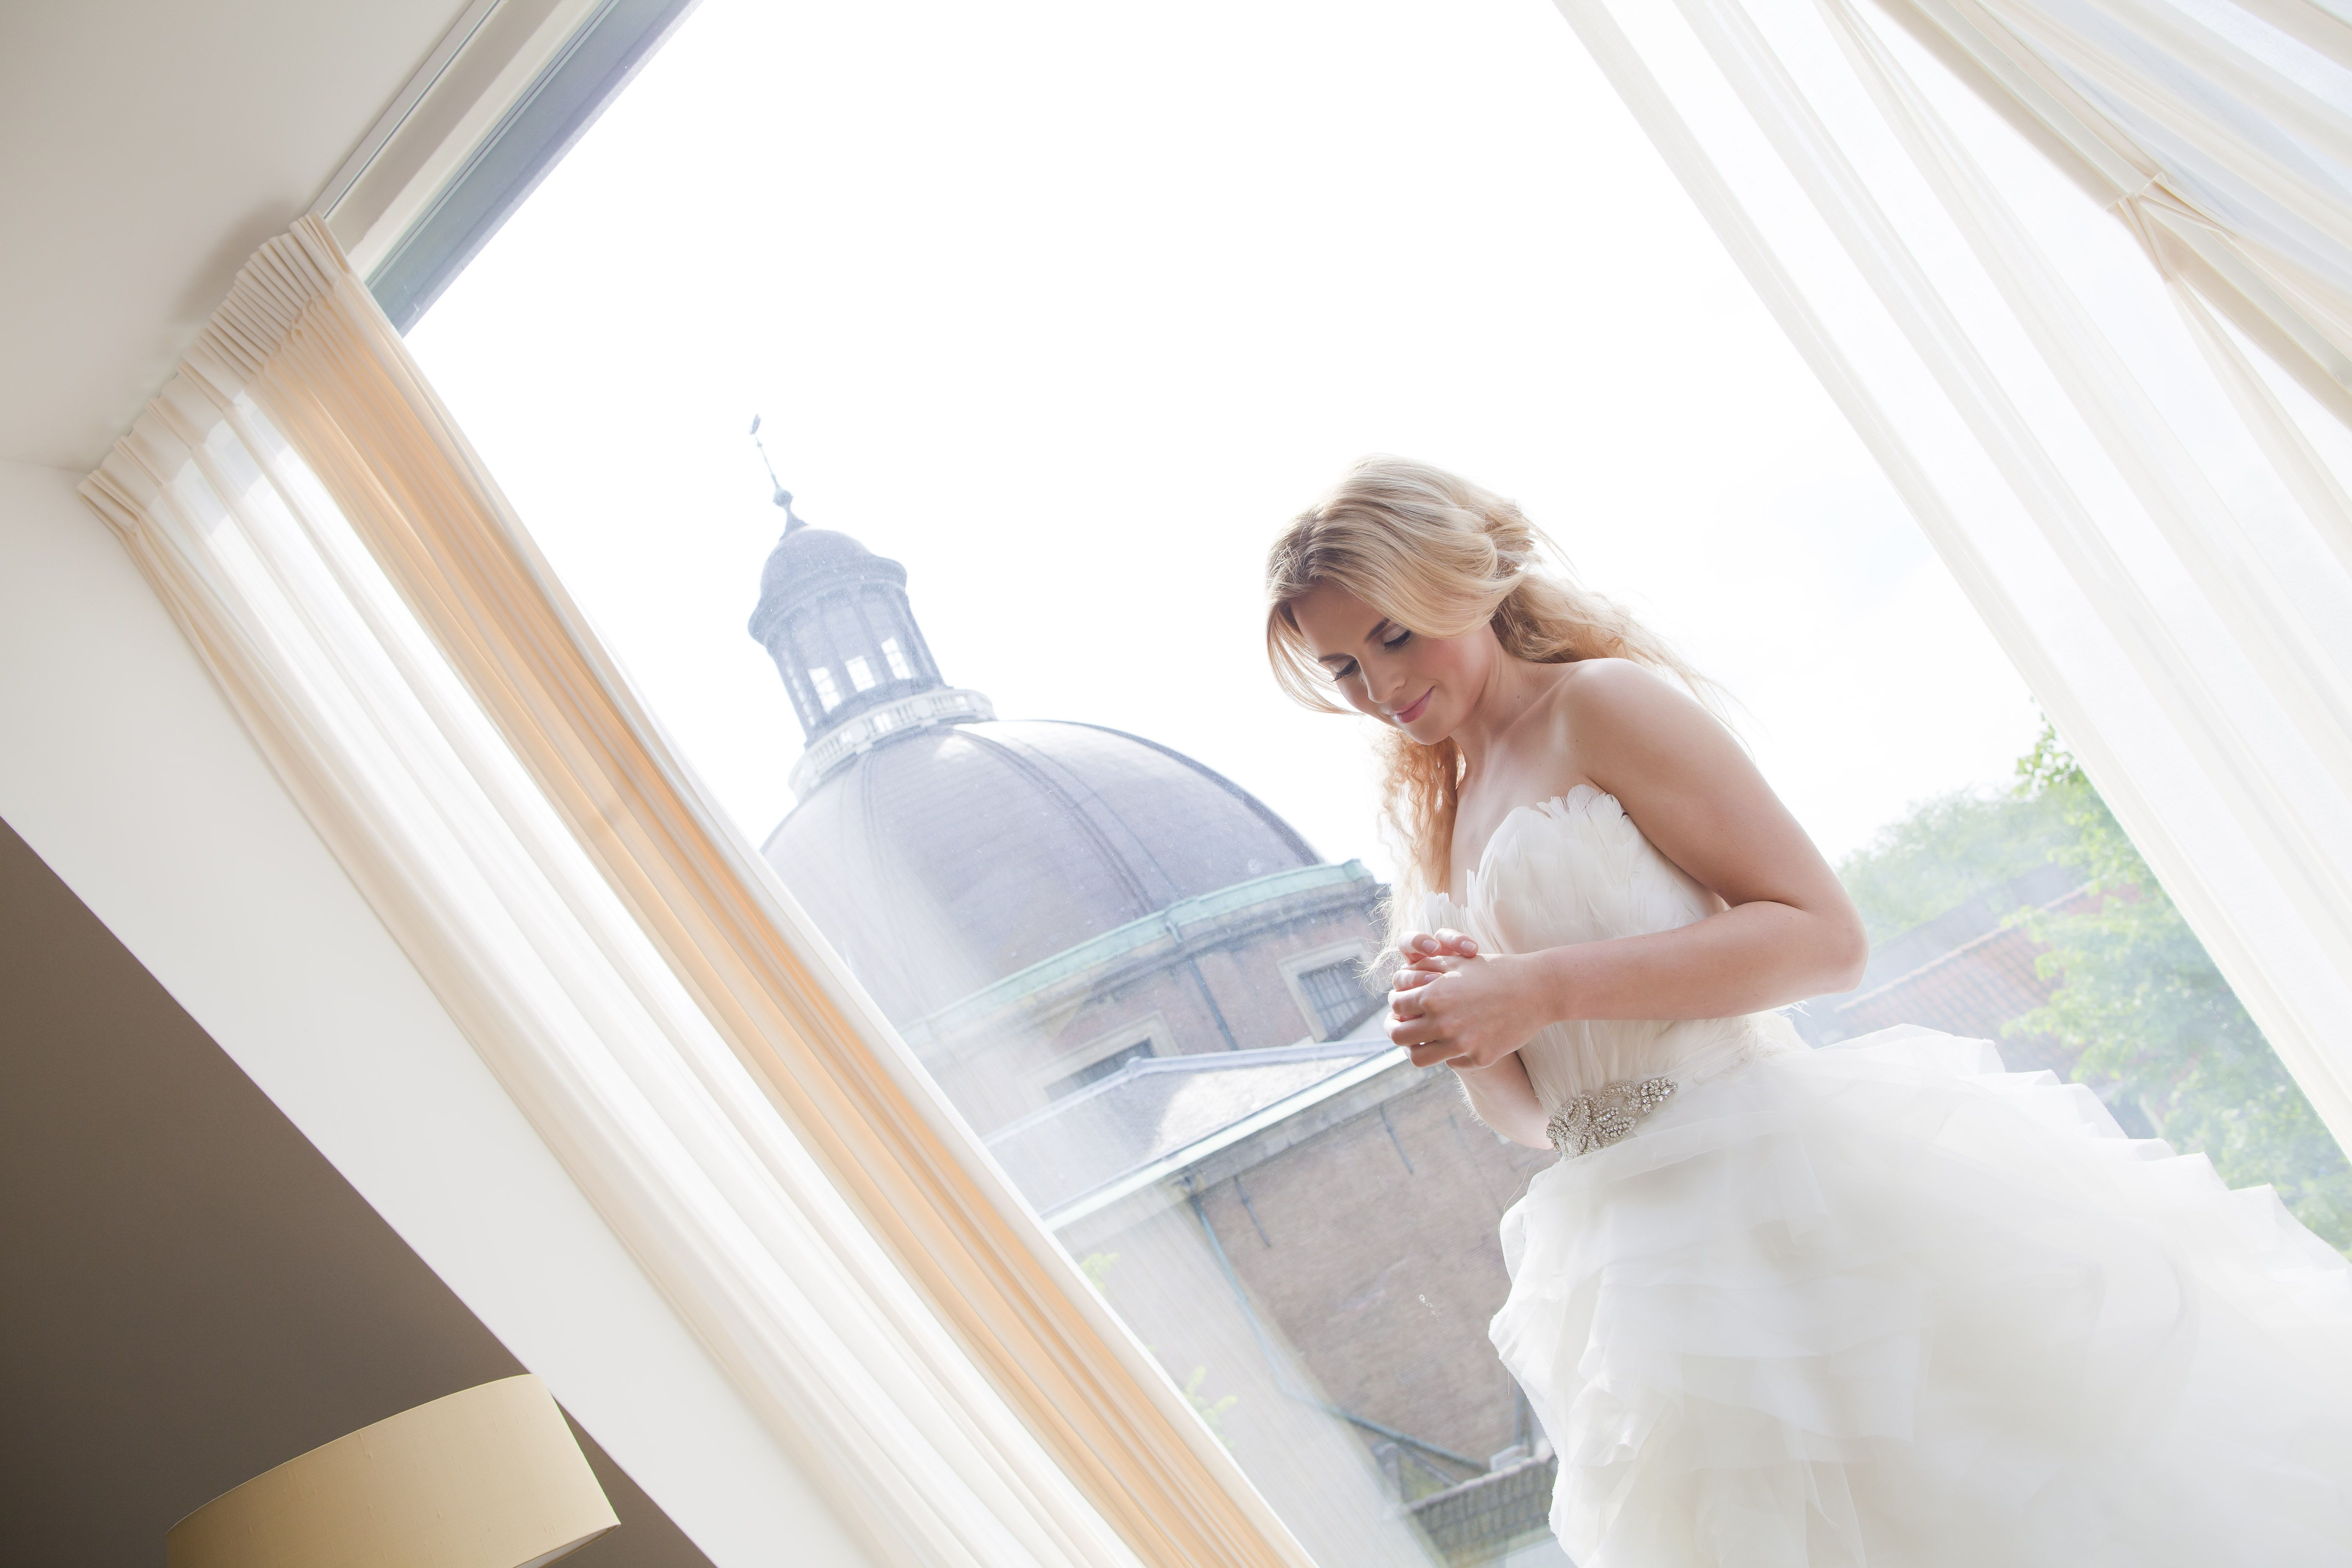 Wedding at the #Koepelkerk Say I do at Renaissance Hotel Amsterdam book a room next to the koepelkerk!